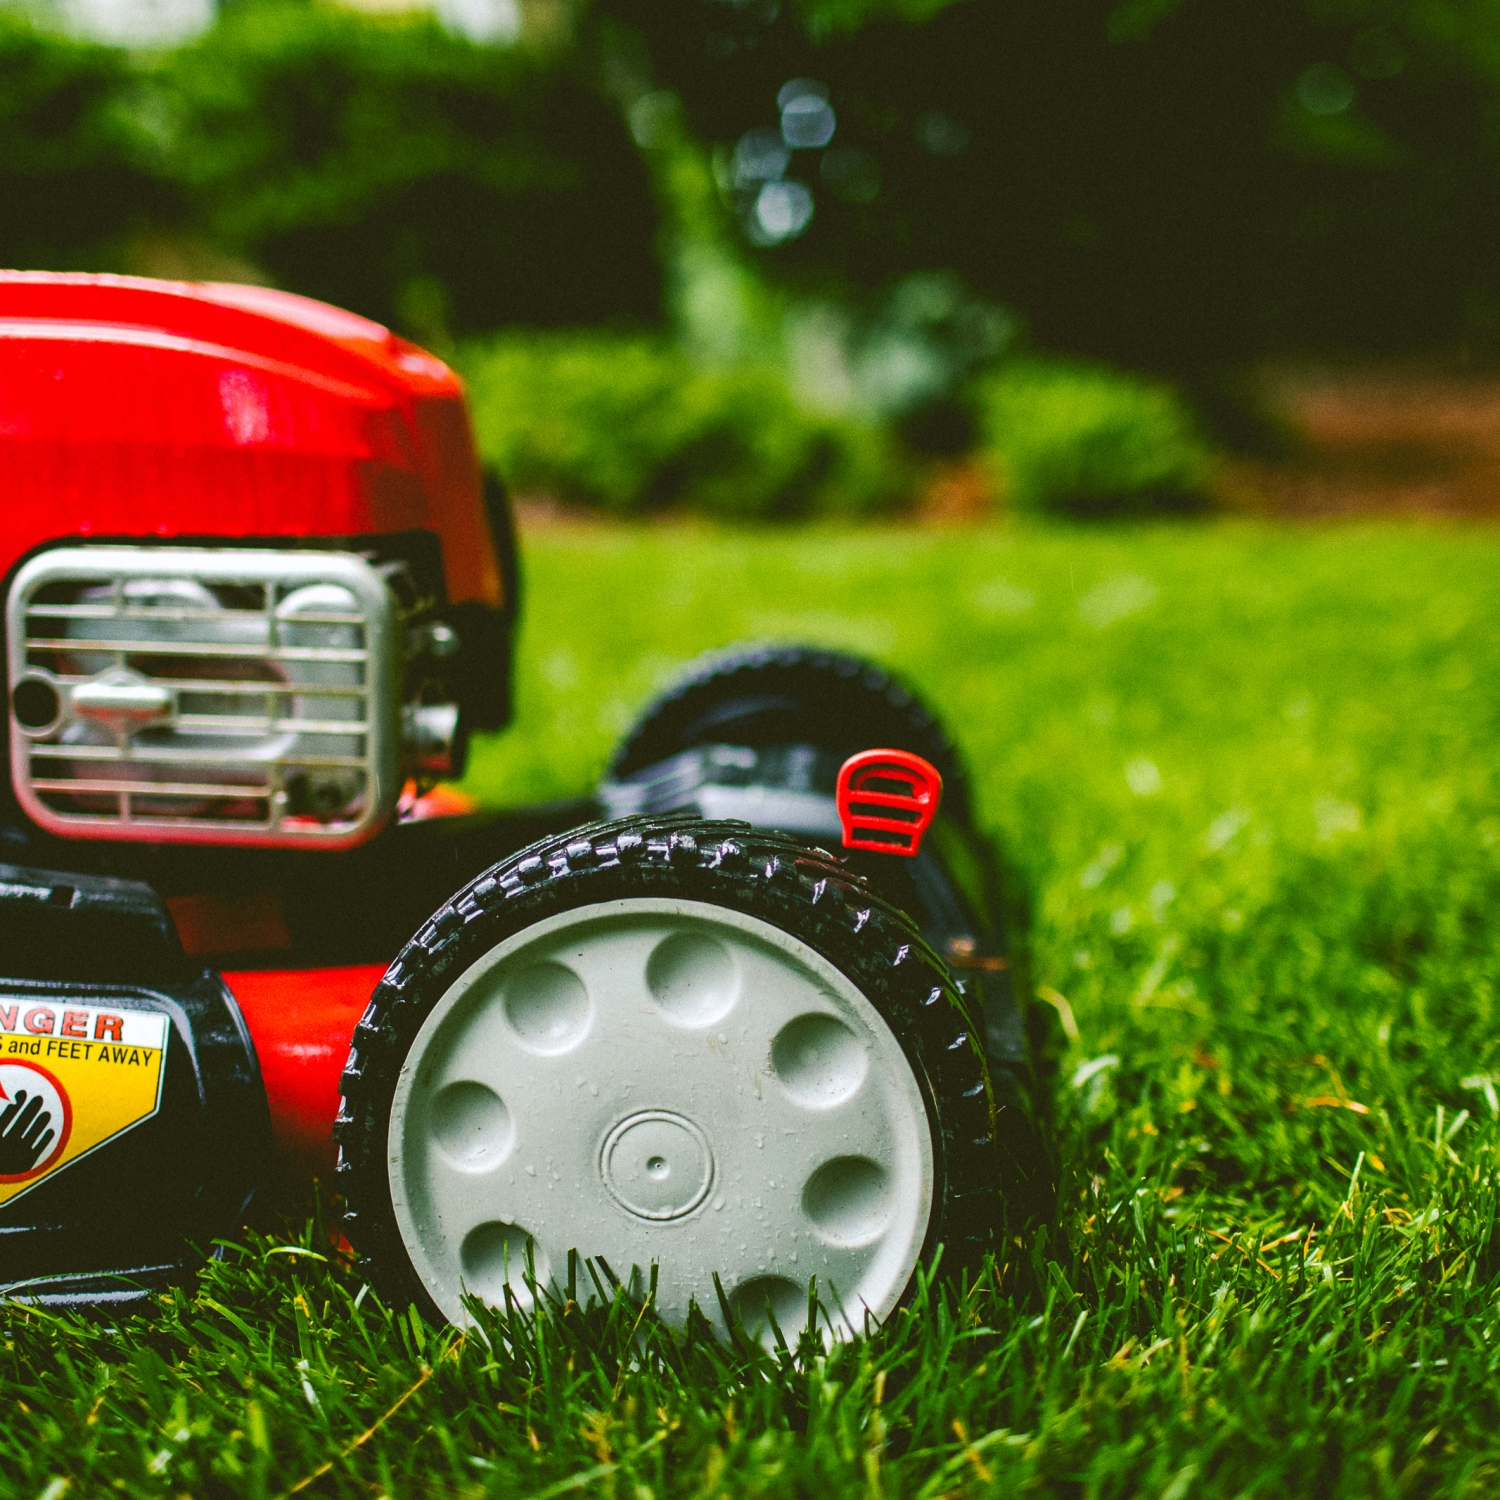 Lawn mower used for summer lawn care